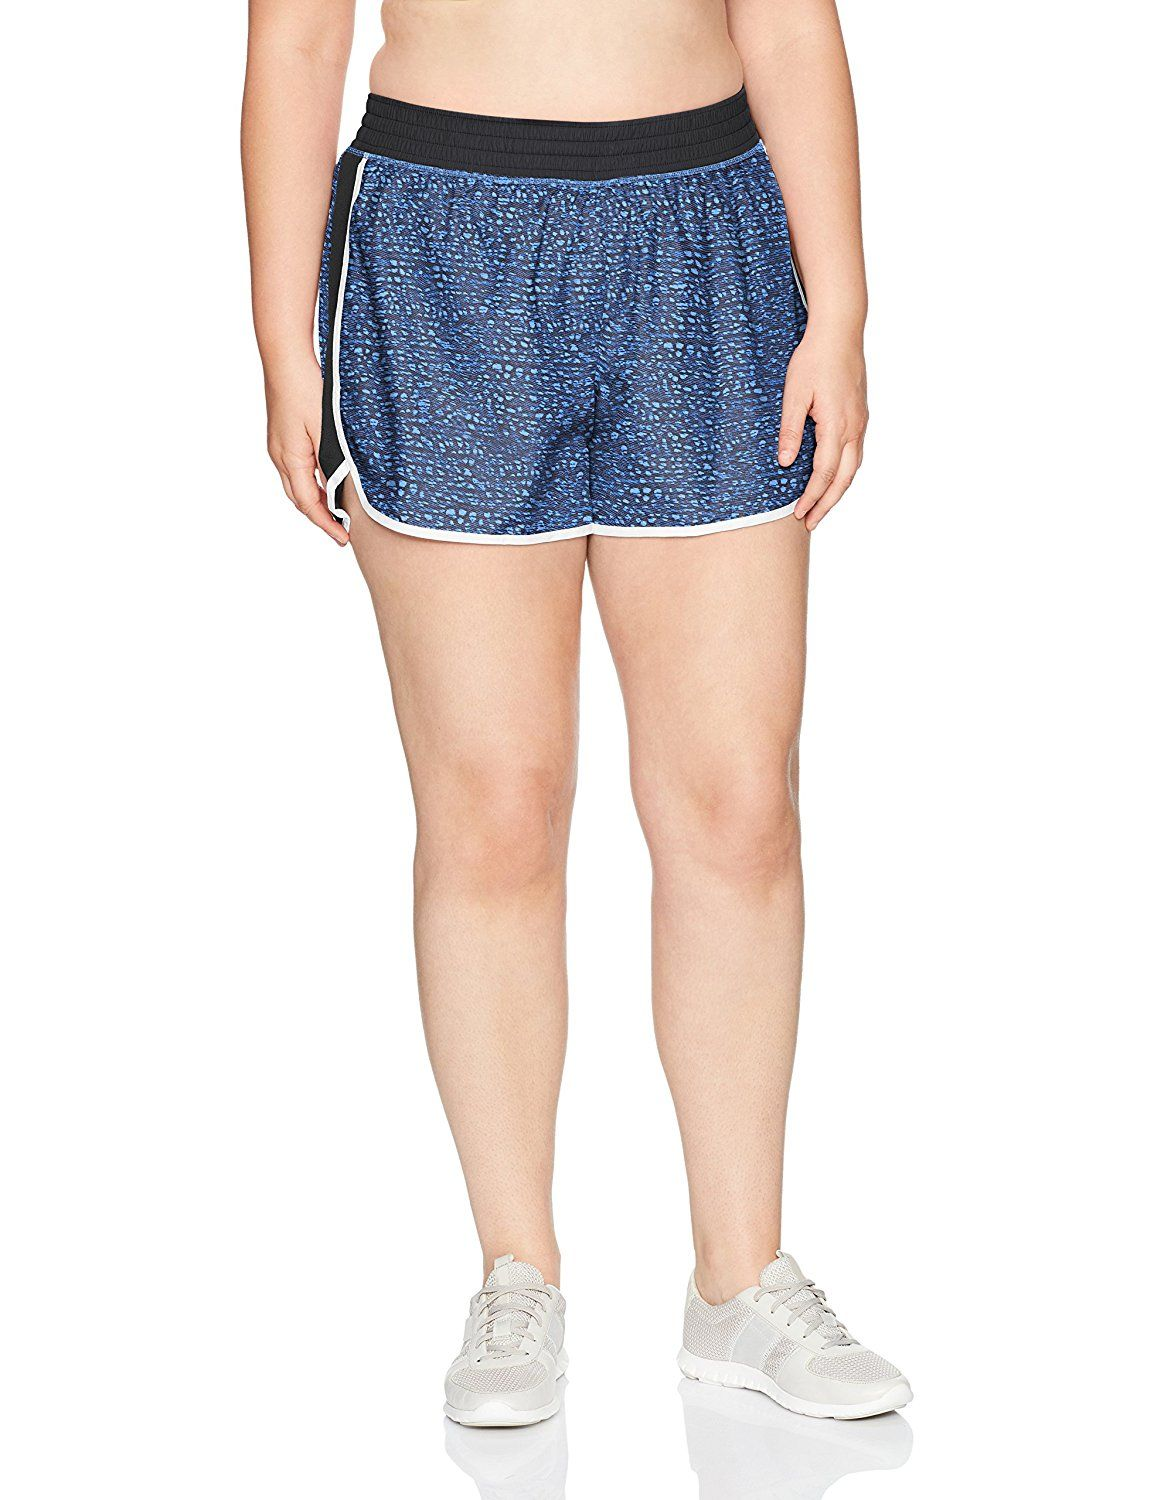 a1dee85078f Amazon.com  Just My Size Women s Plus Size Active Woven Run Short  Clothing